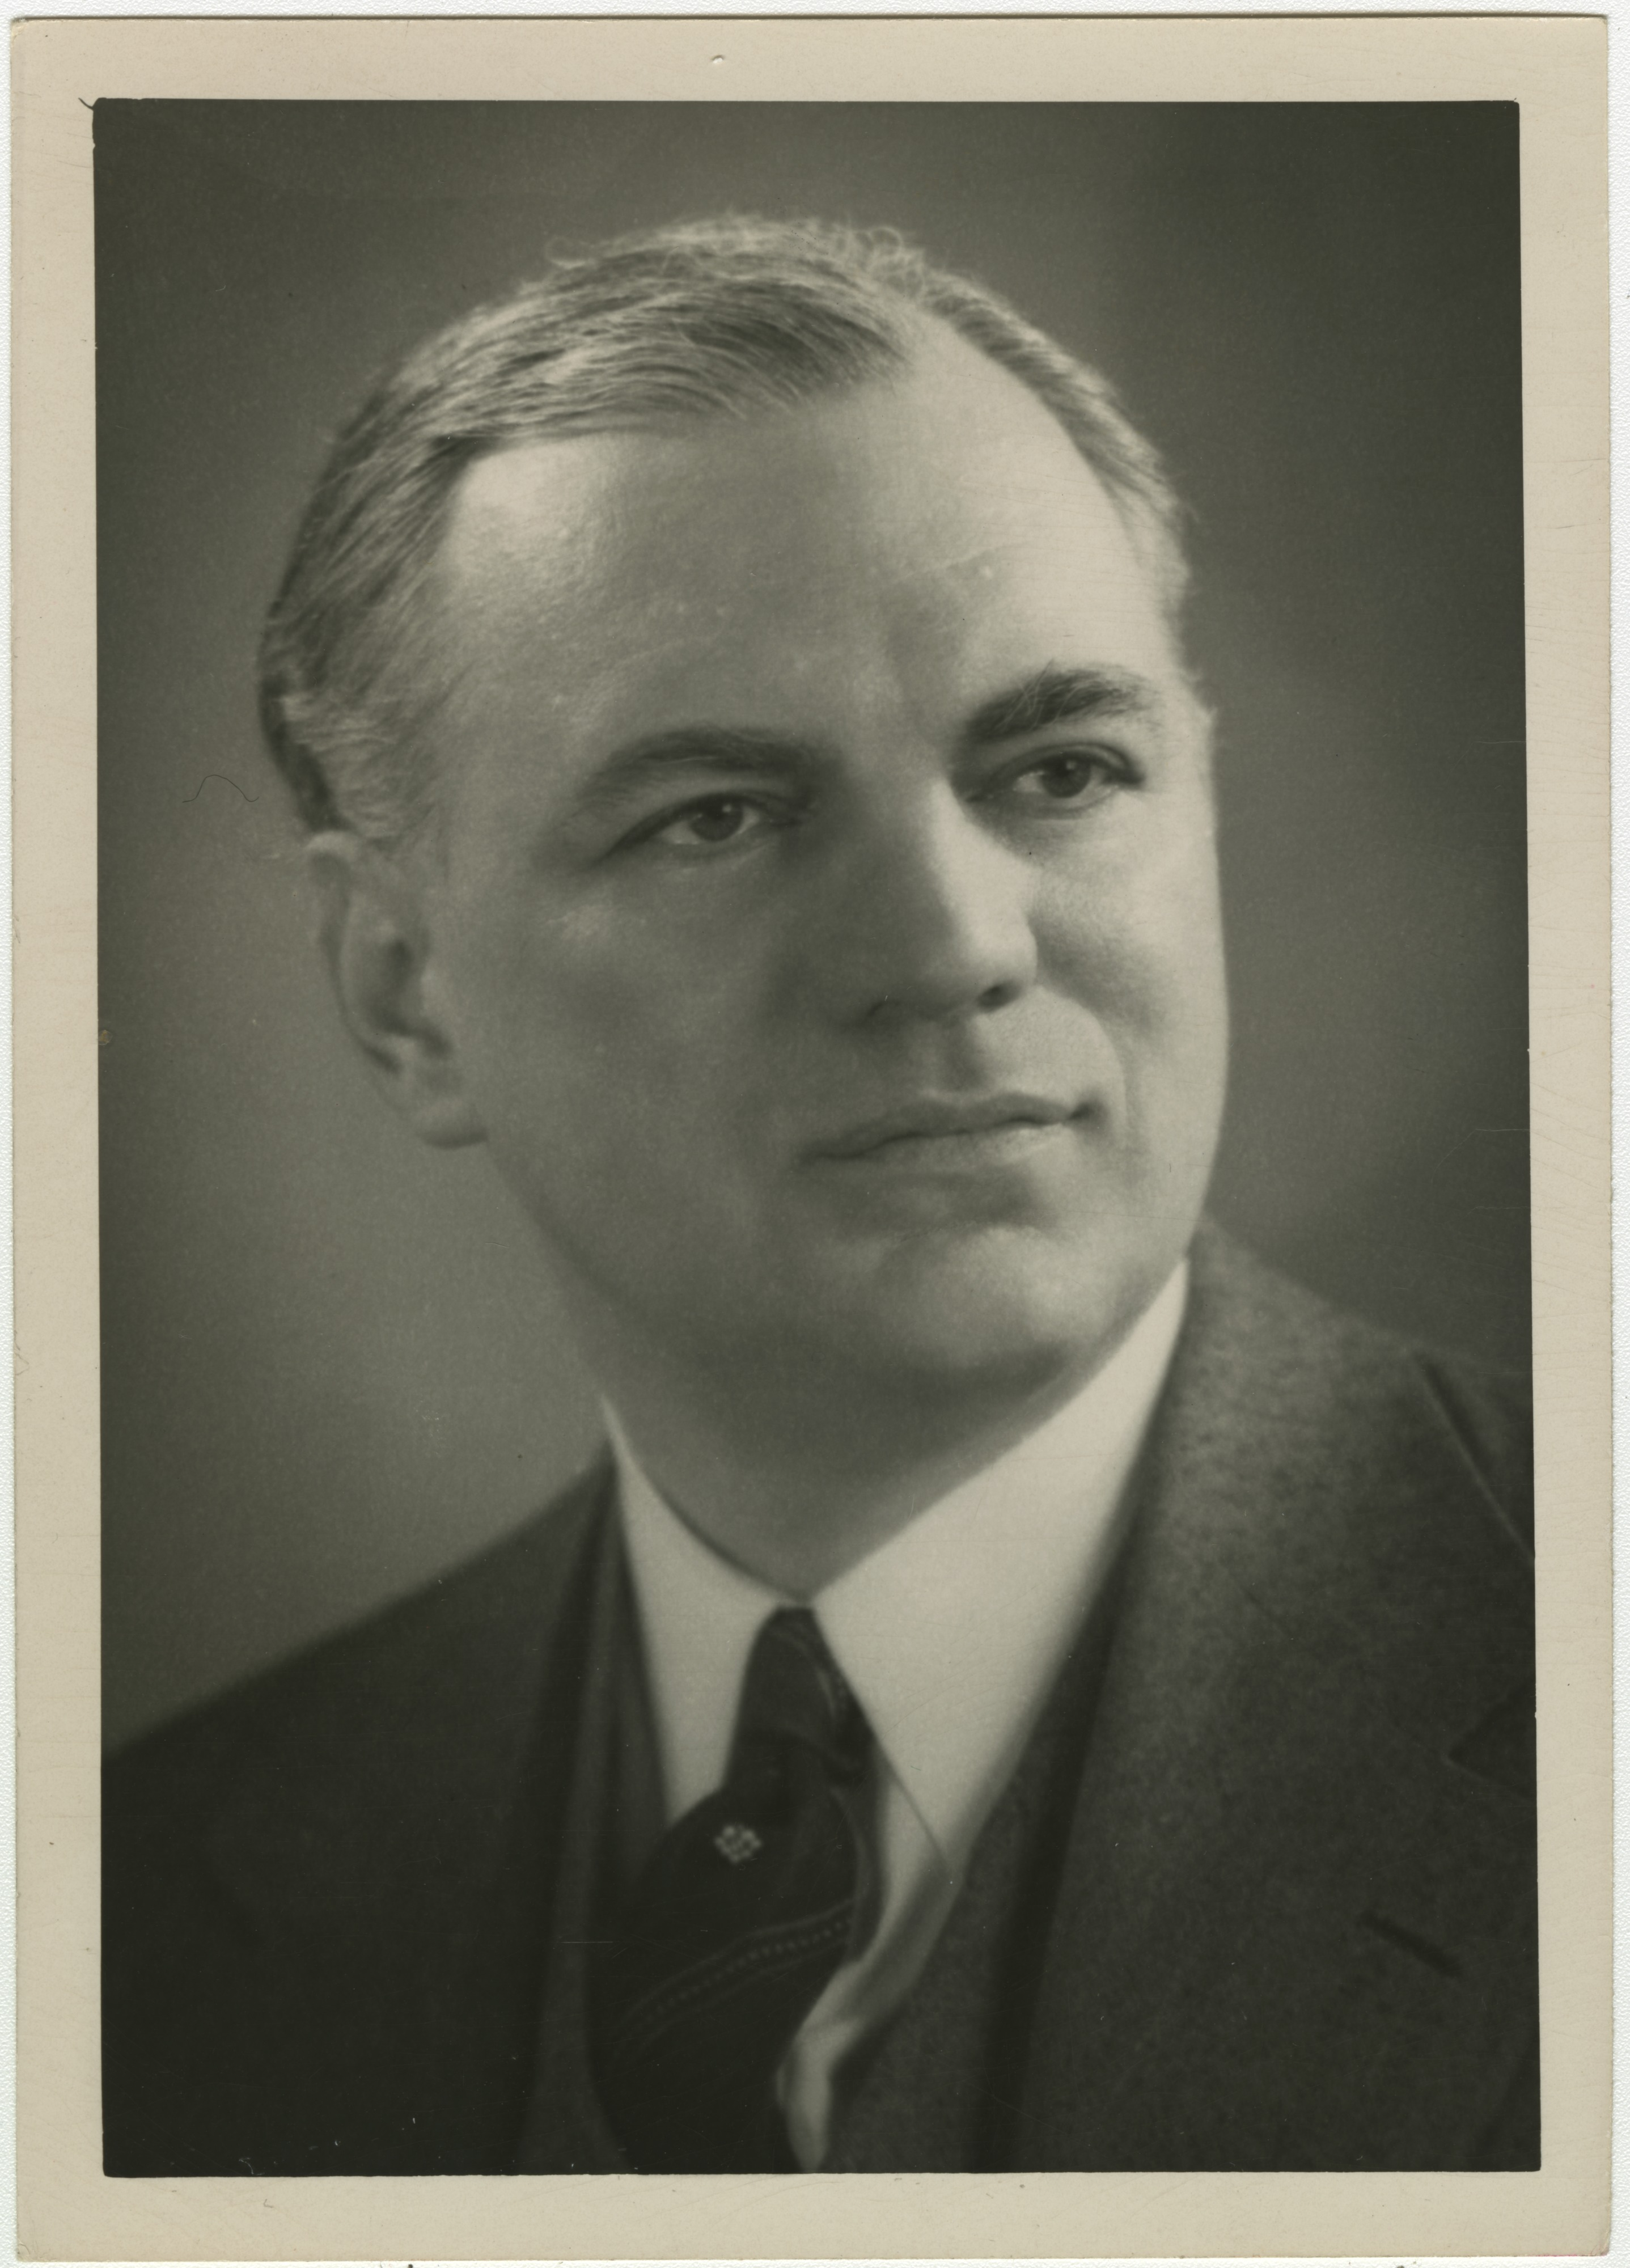 Portrait of Preston W. Slosson, 1948 image